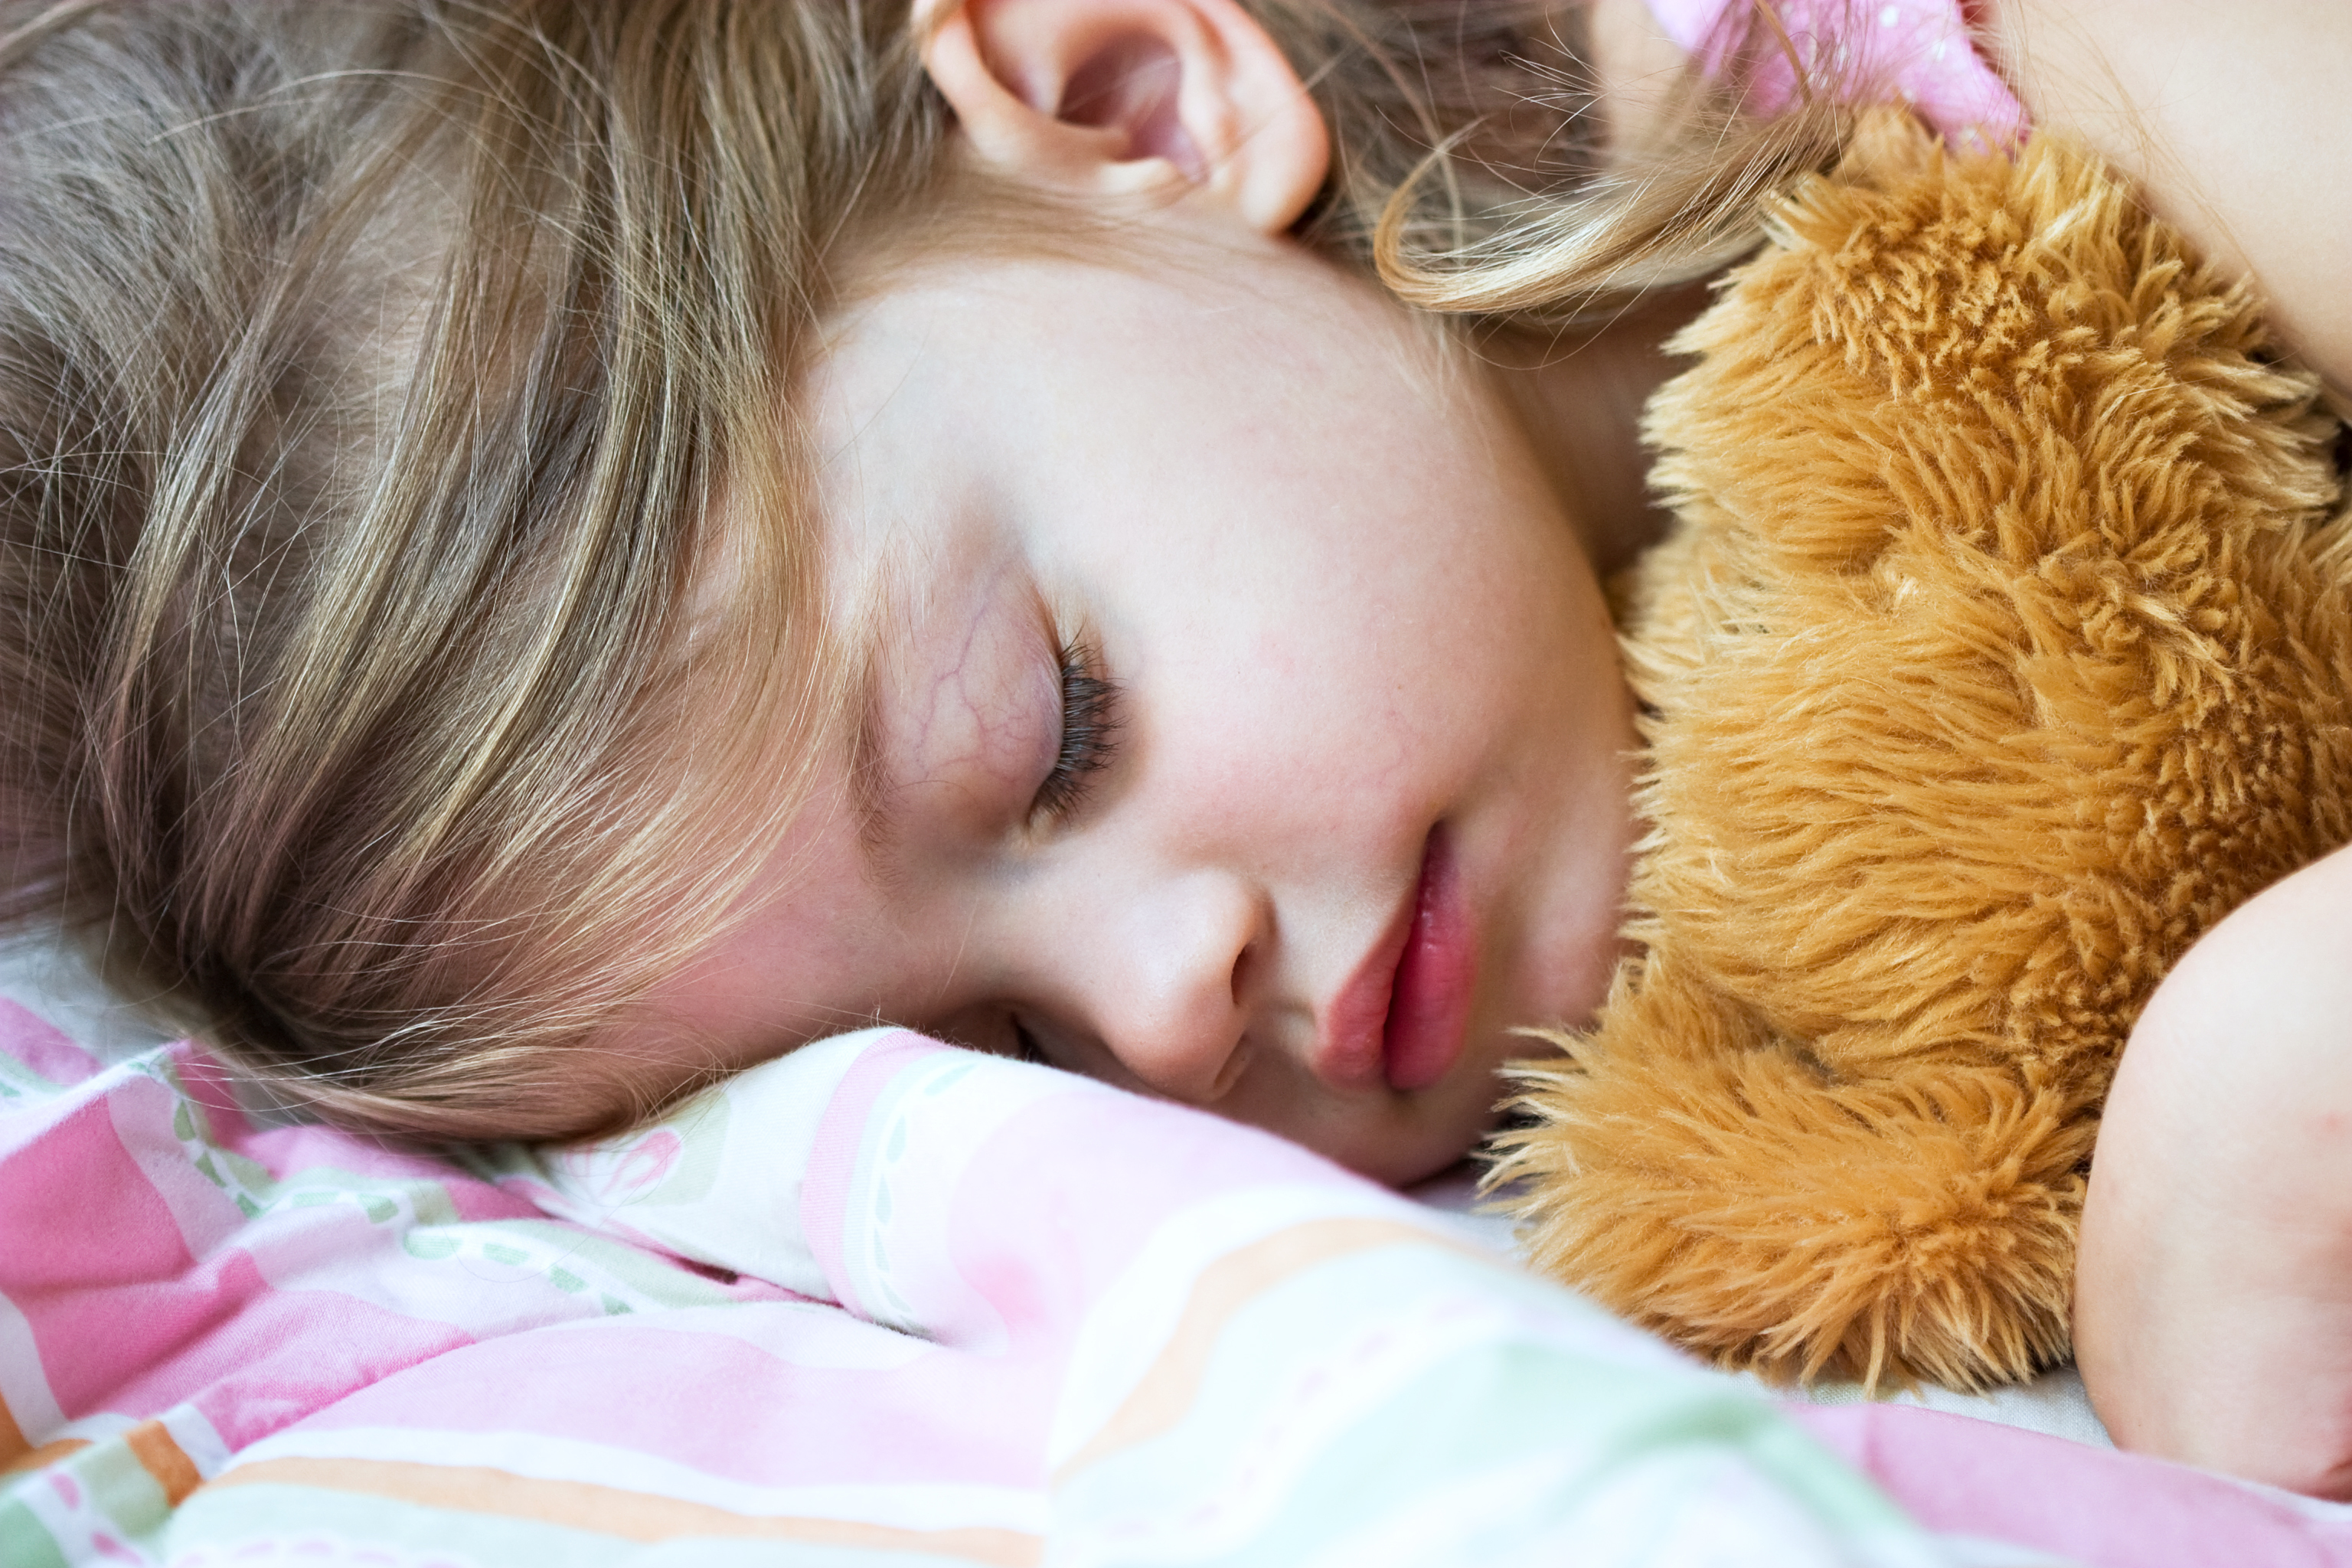 Toddler sleeping with her teddy bear on a pink blanket